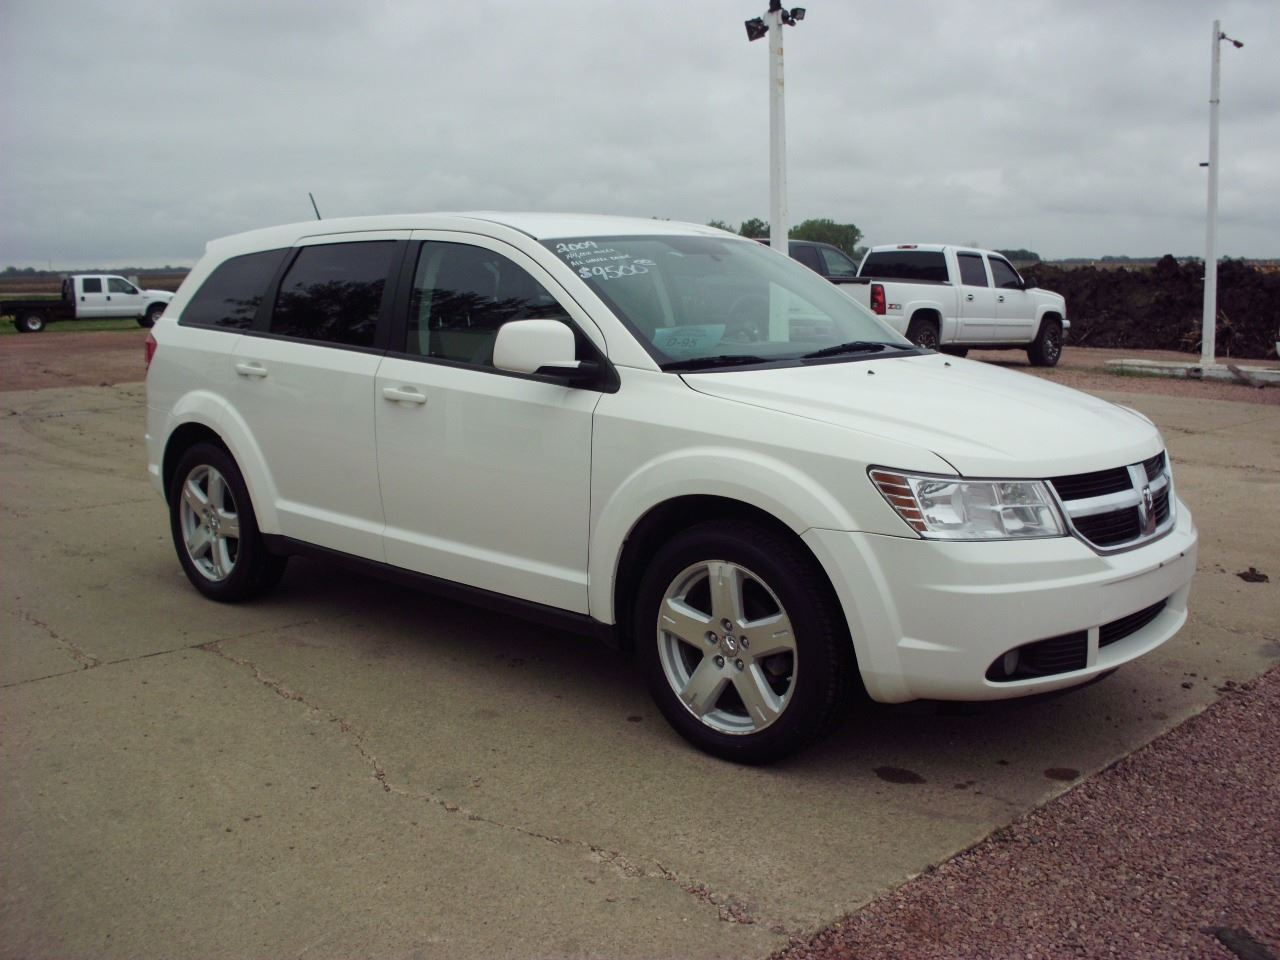 2009 Dodge Journey AWD SXT 4dr SUV - Canton SD